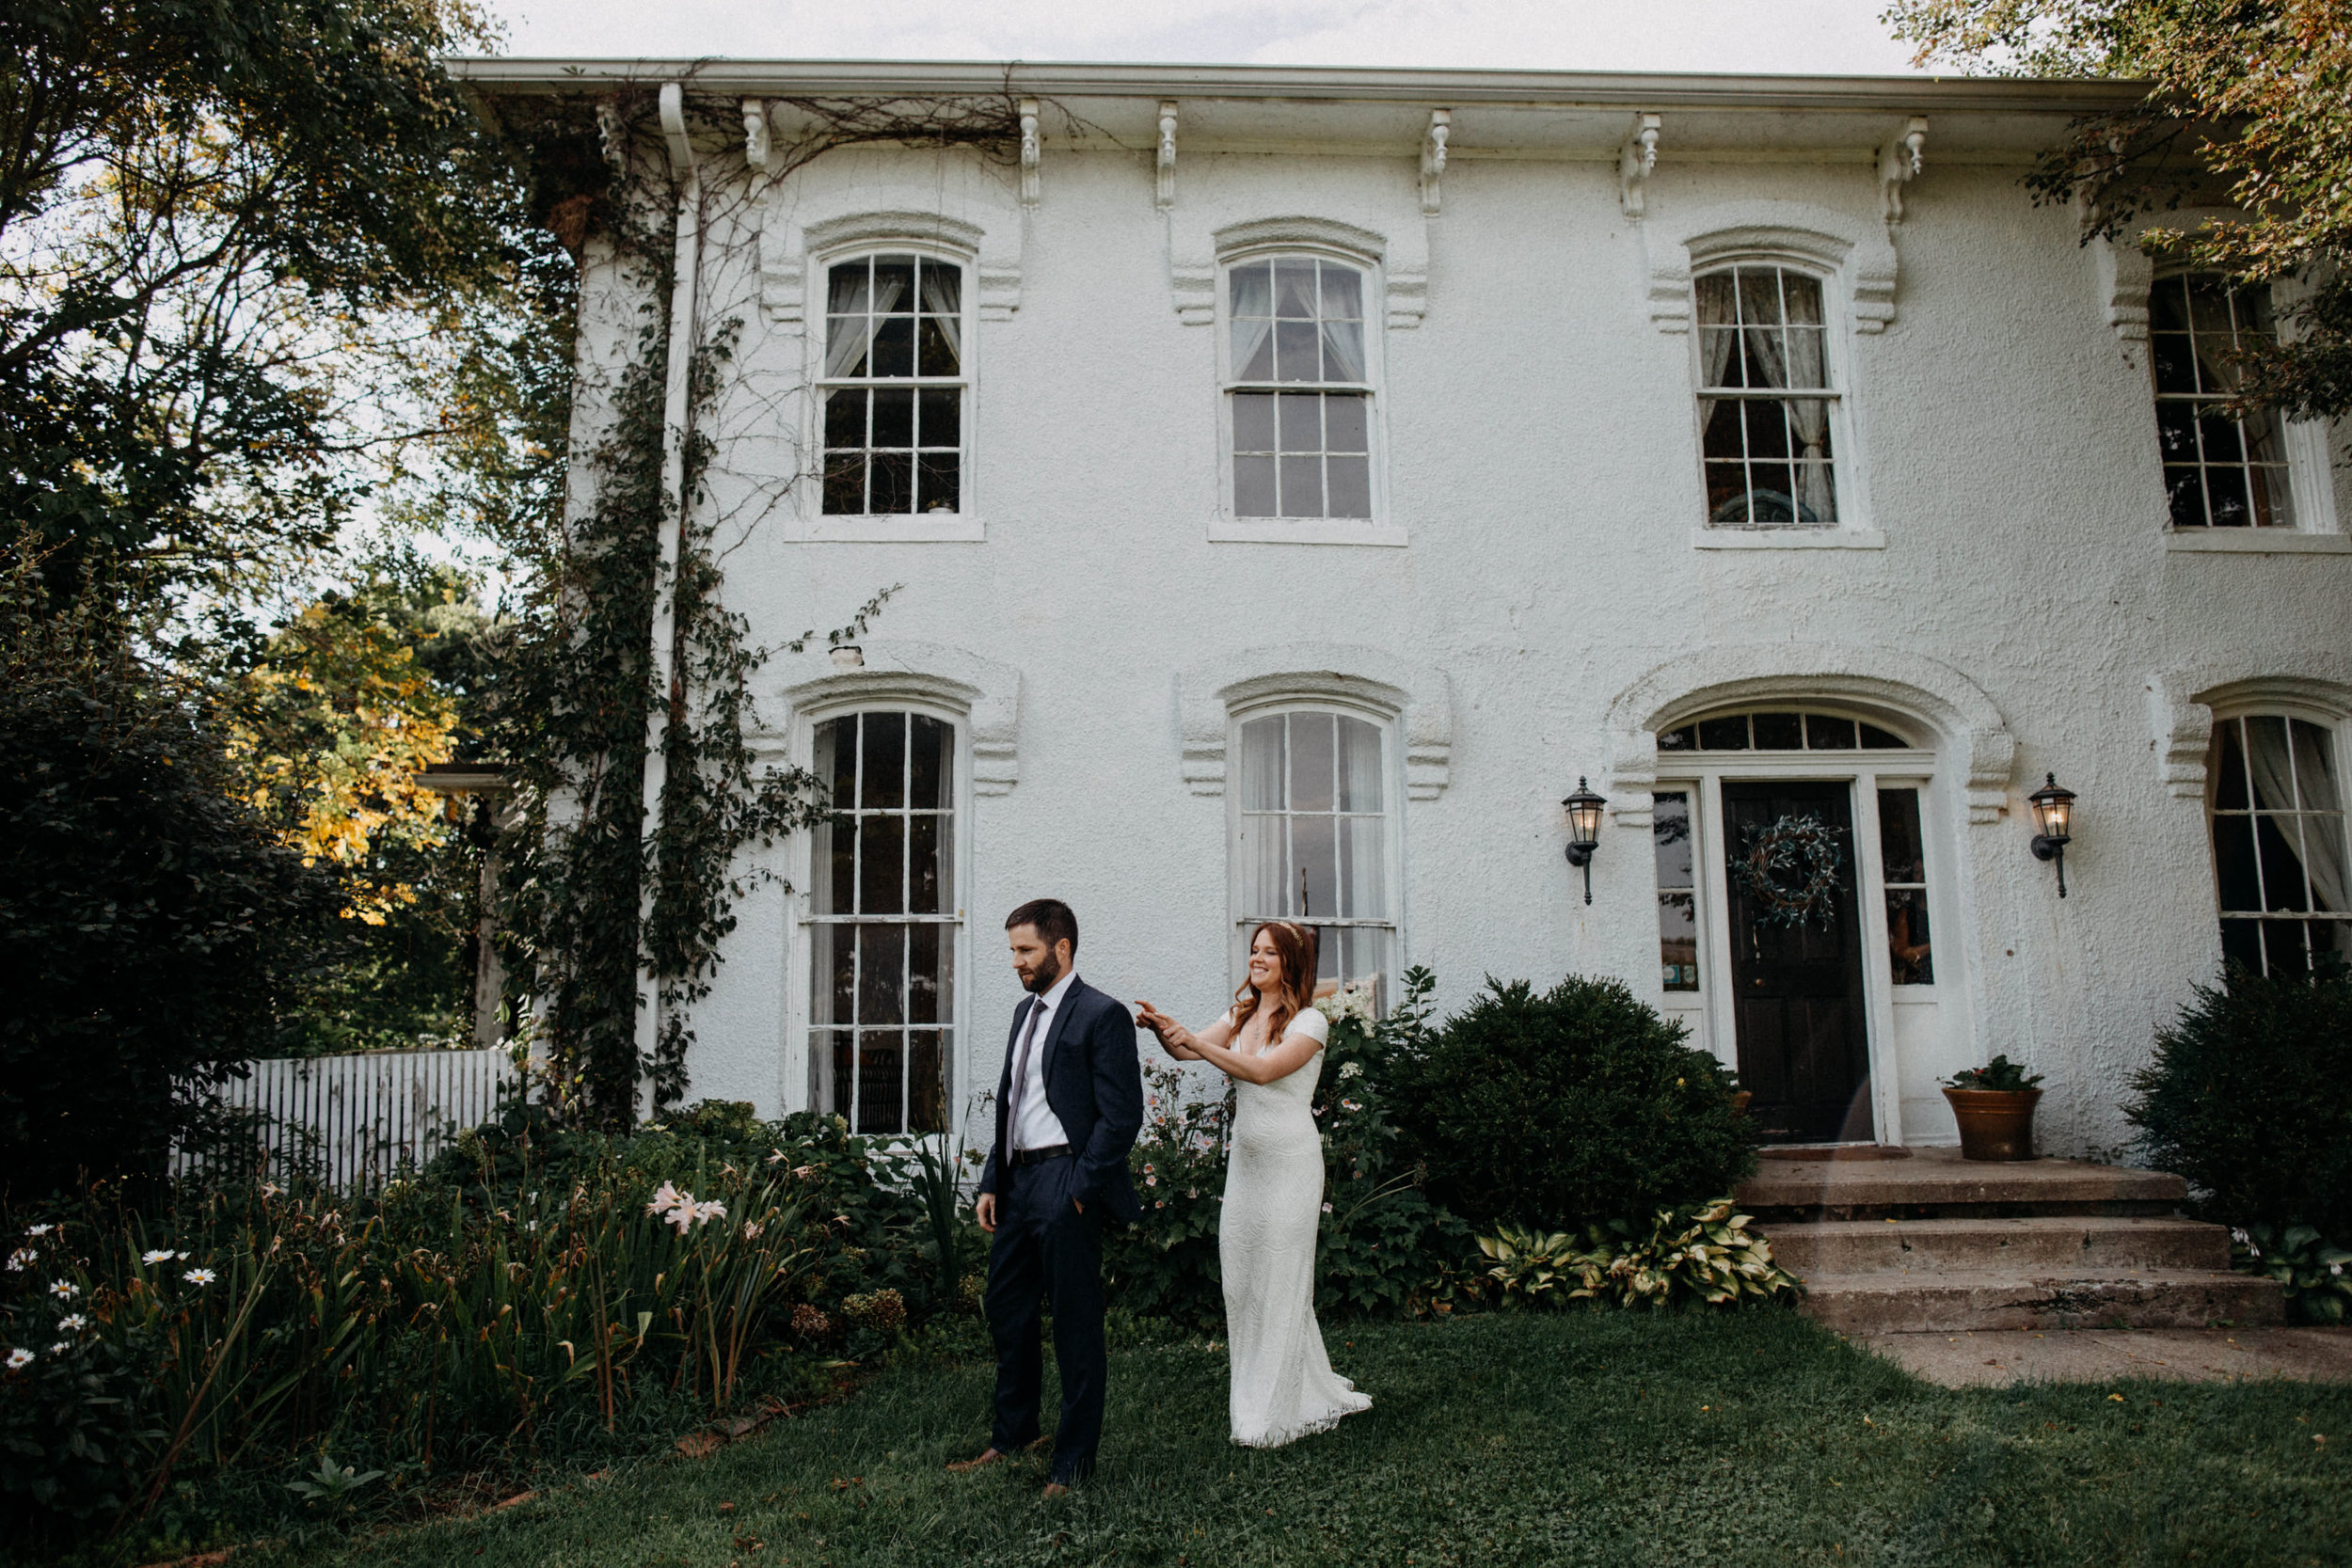 untraditional intimate bed and breakfast wedding orchard house bed and breakfast wedding granville ohio92.jpg